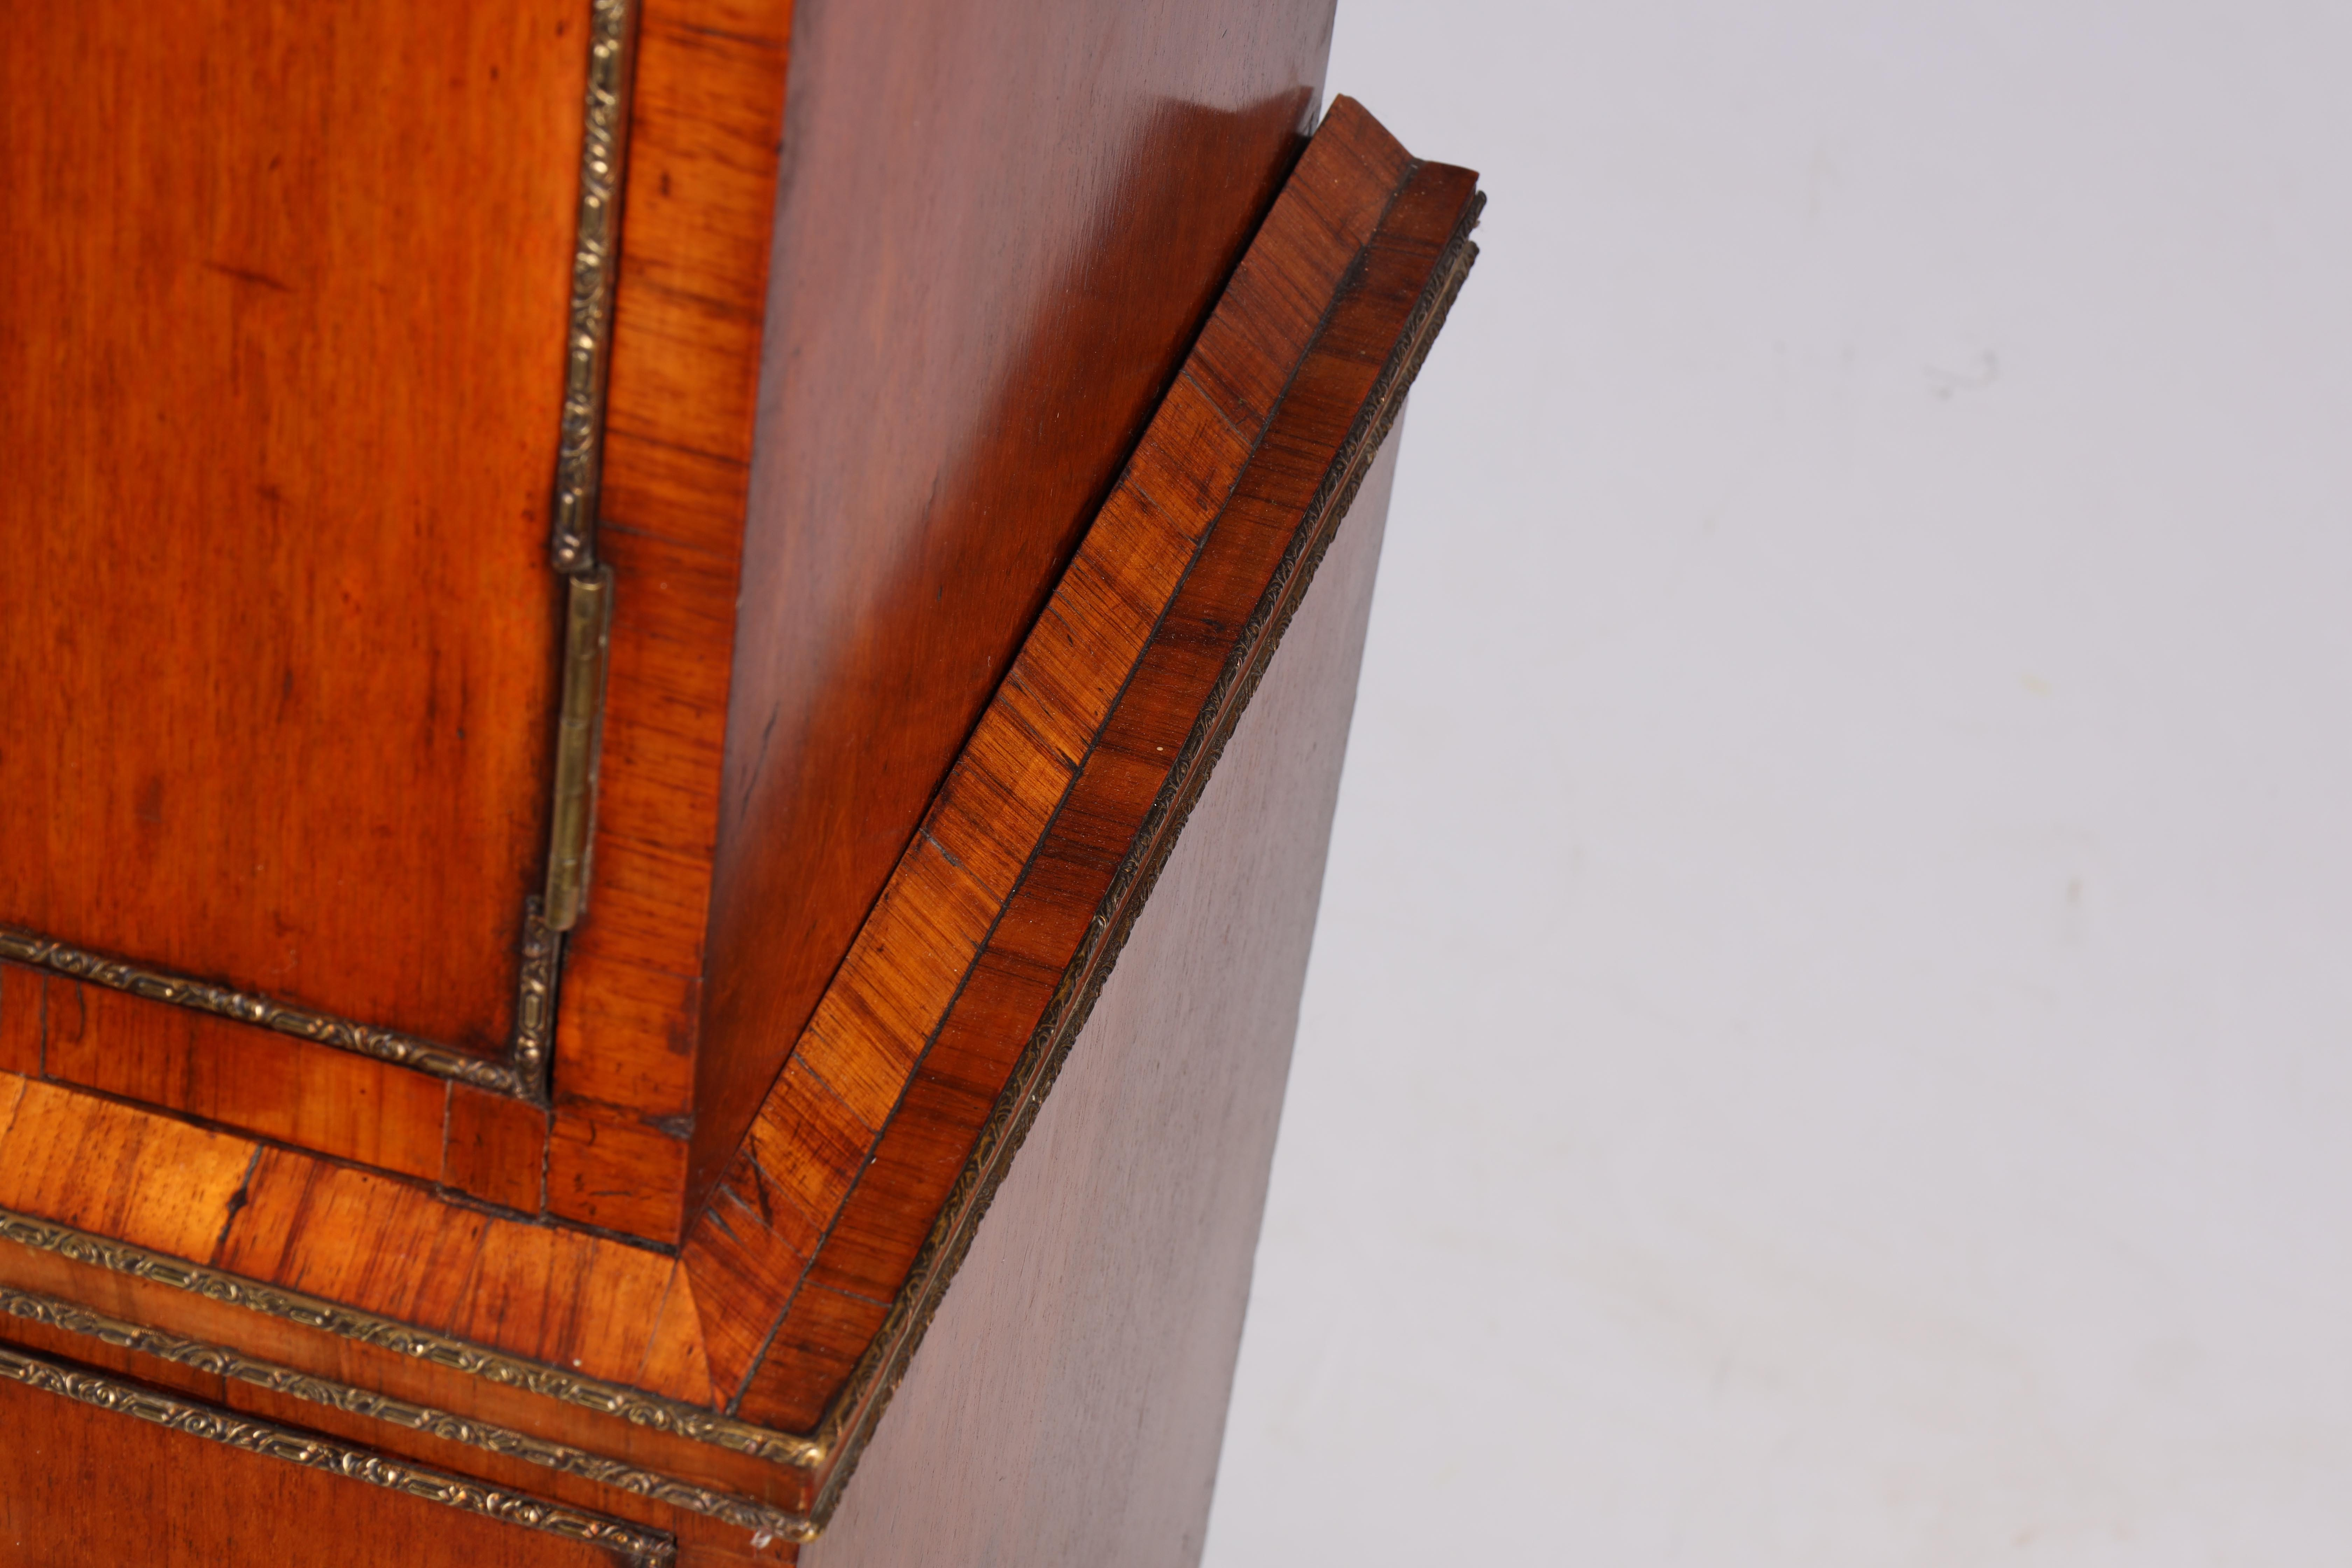 A LARGE PAIR OF GEORGE III KINGWOOD BANDED MAHOGANY PEDESTALS with unusual pen work panels depicting - Image 10 of 11